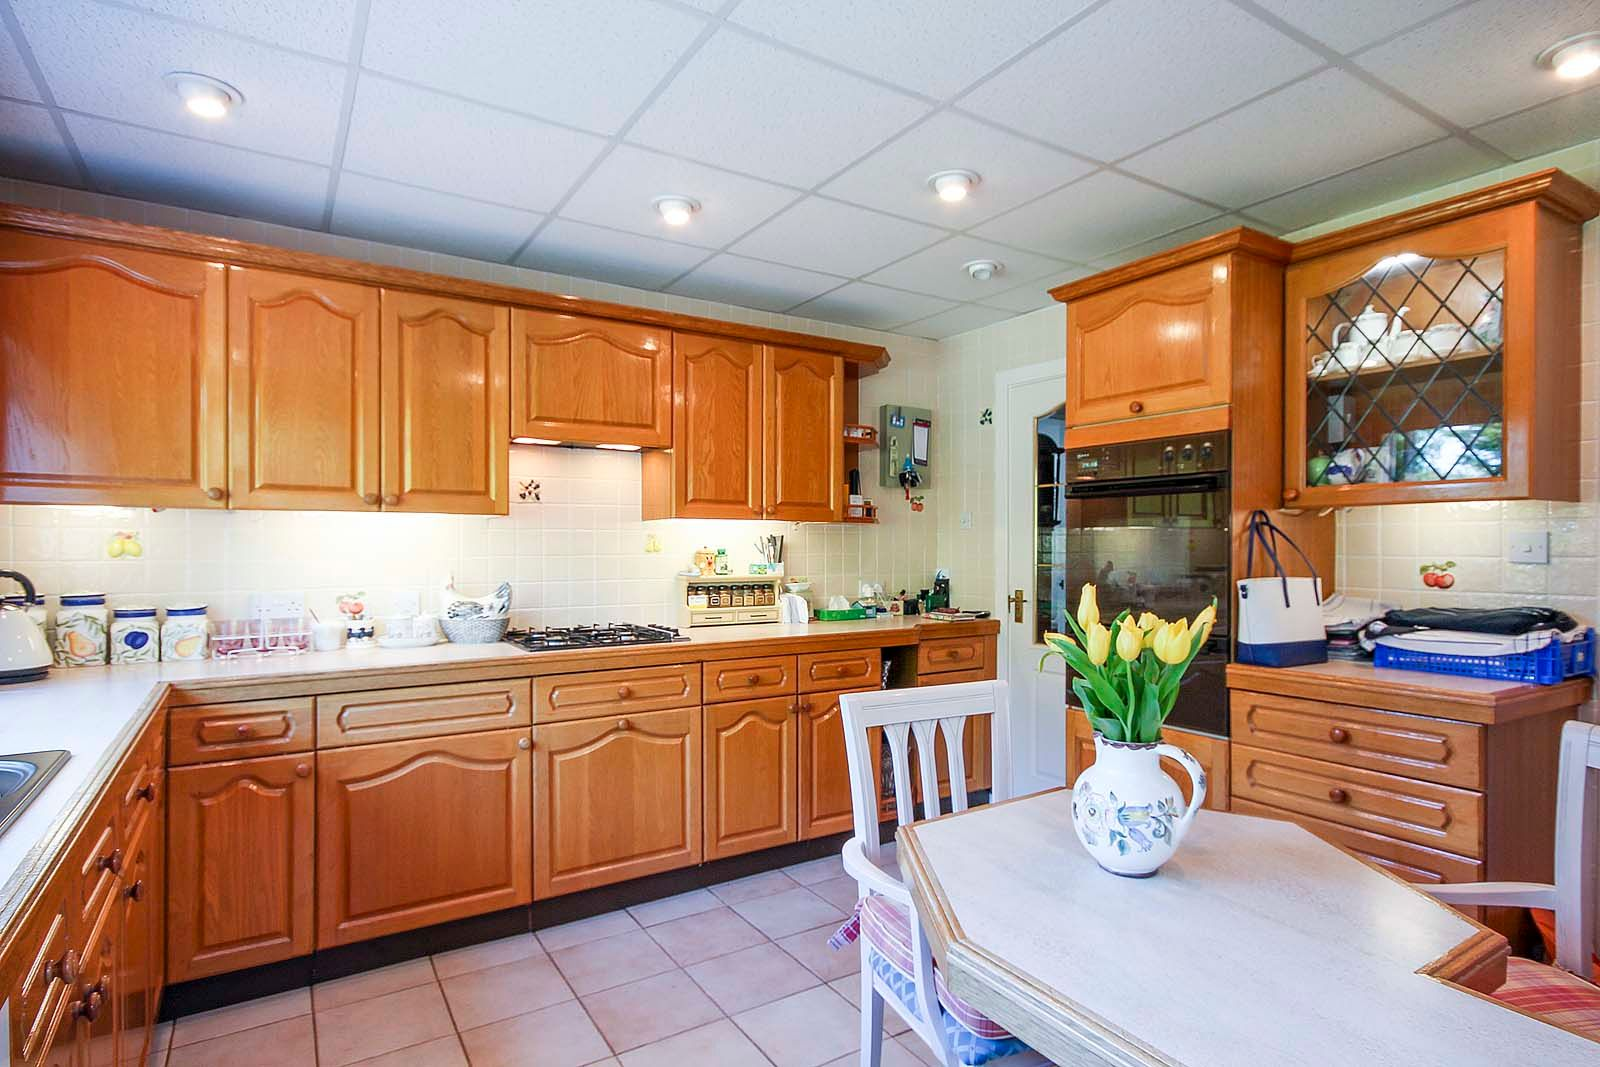 5 bed House for sale in The Willowhayne, East Preston - Kitchen (Property Image 6)